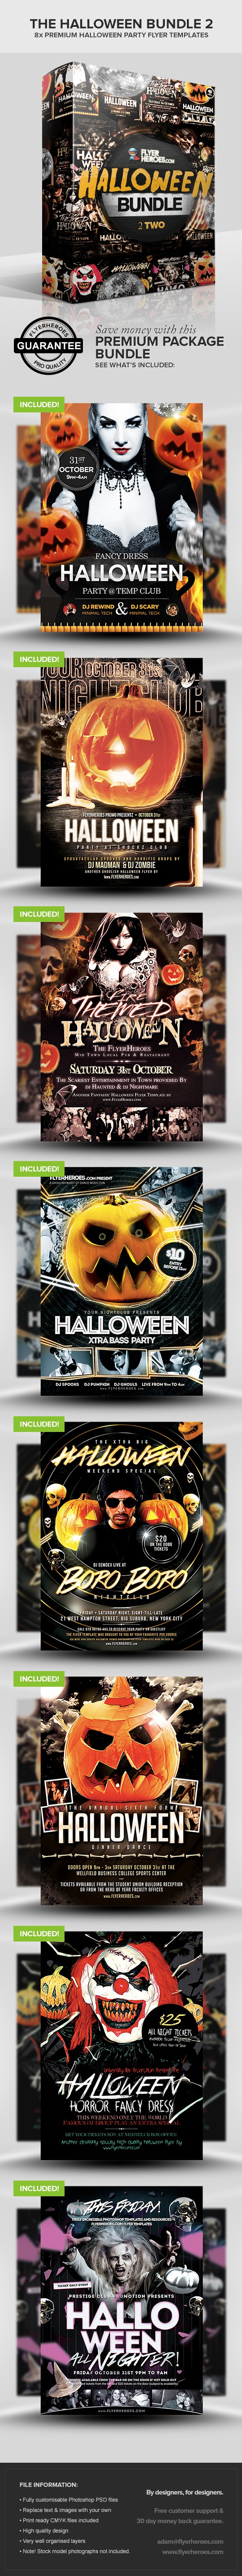 The Halloween Bundle 2